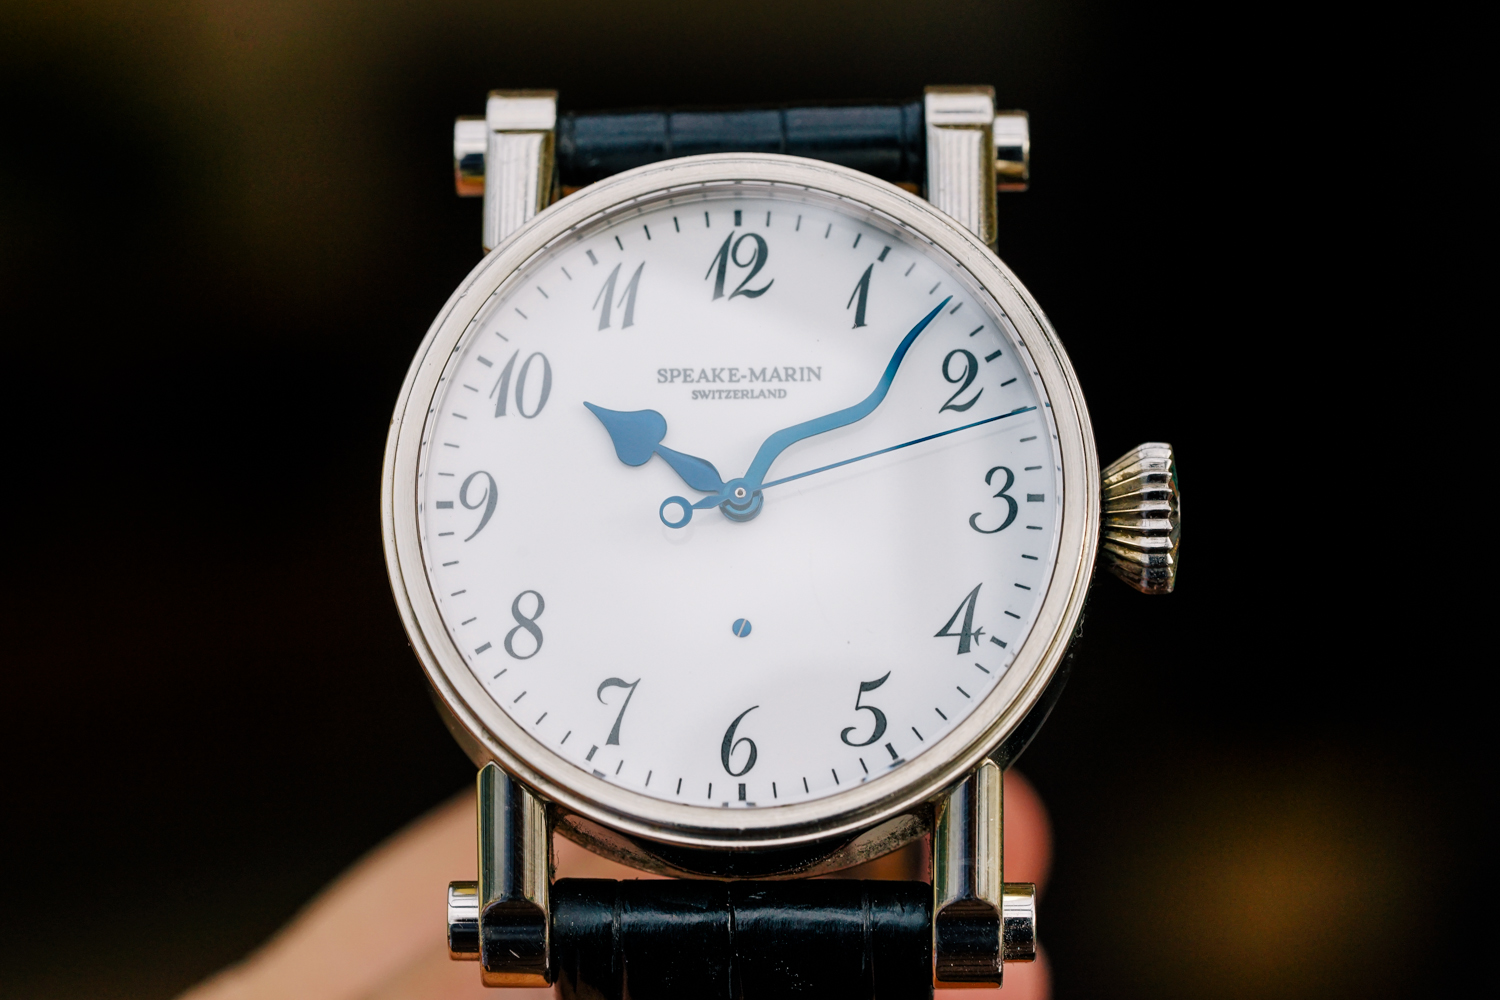 Peter-Speake-Marin-Piccadilly-1